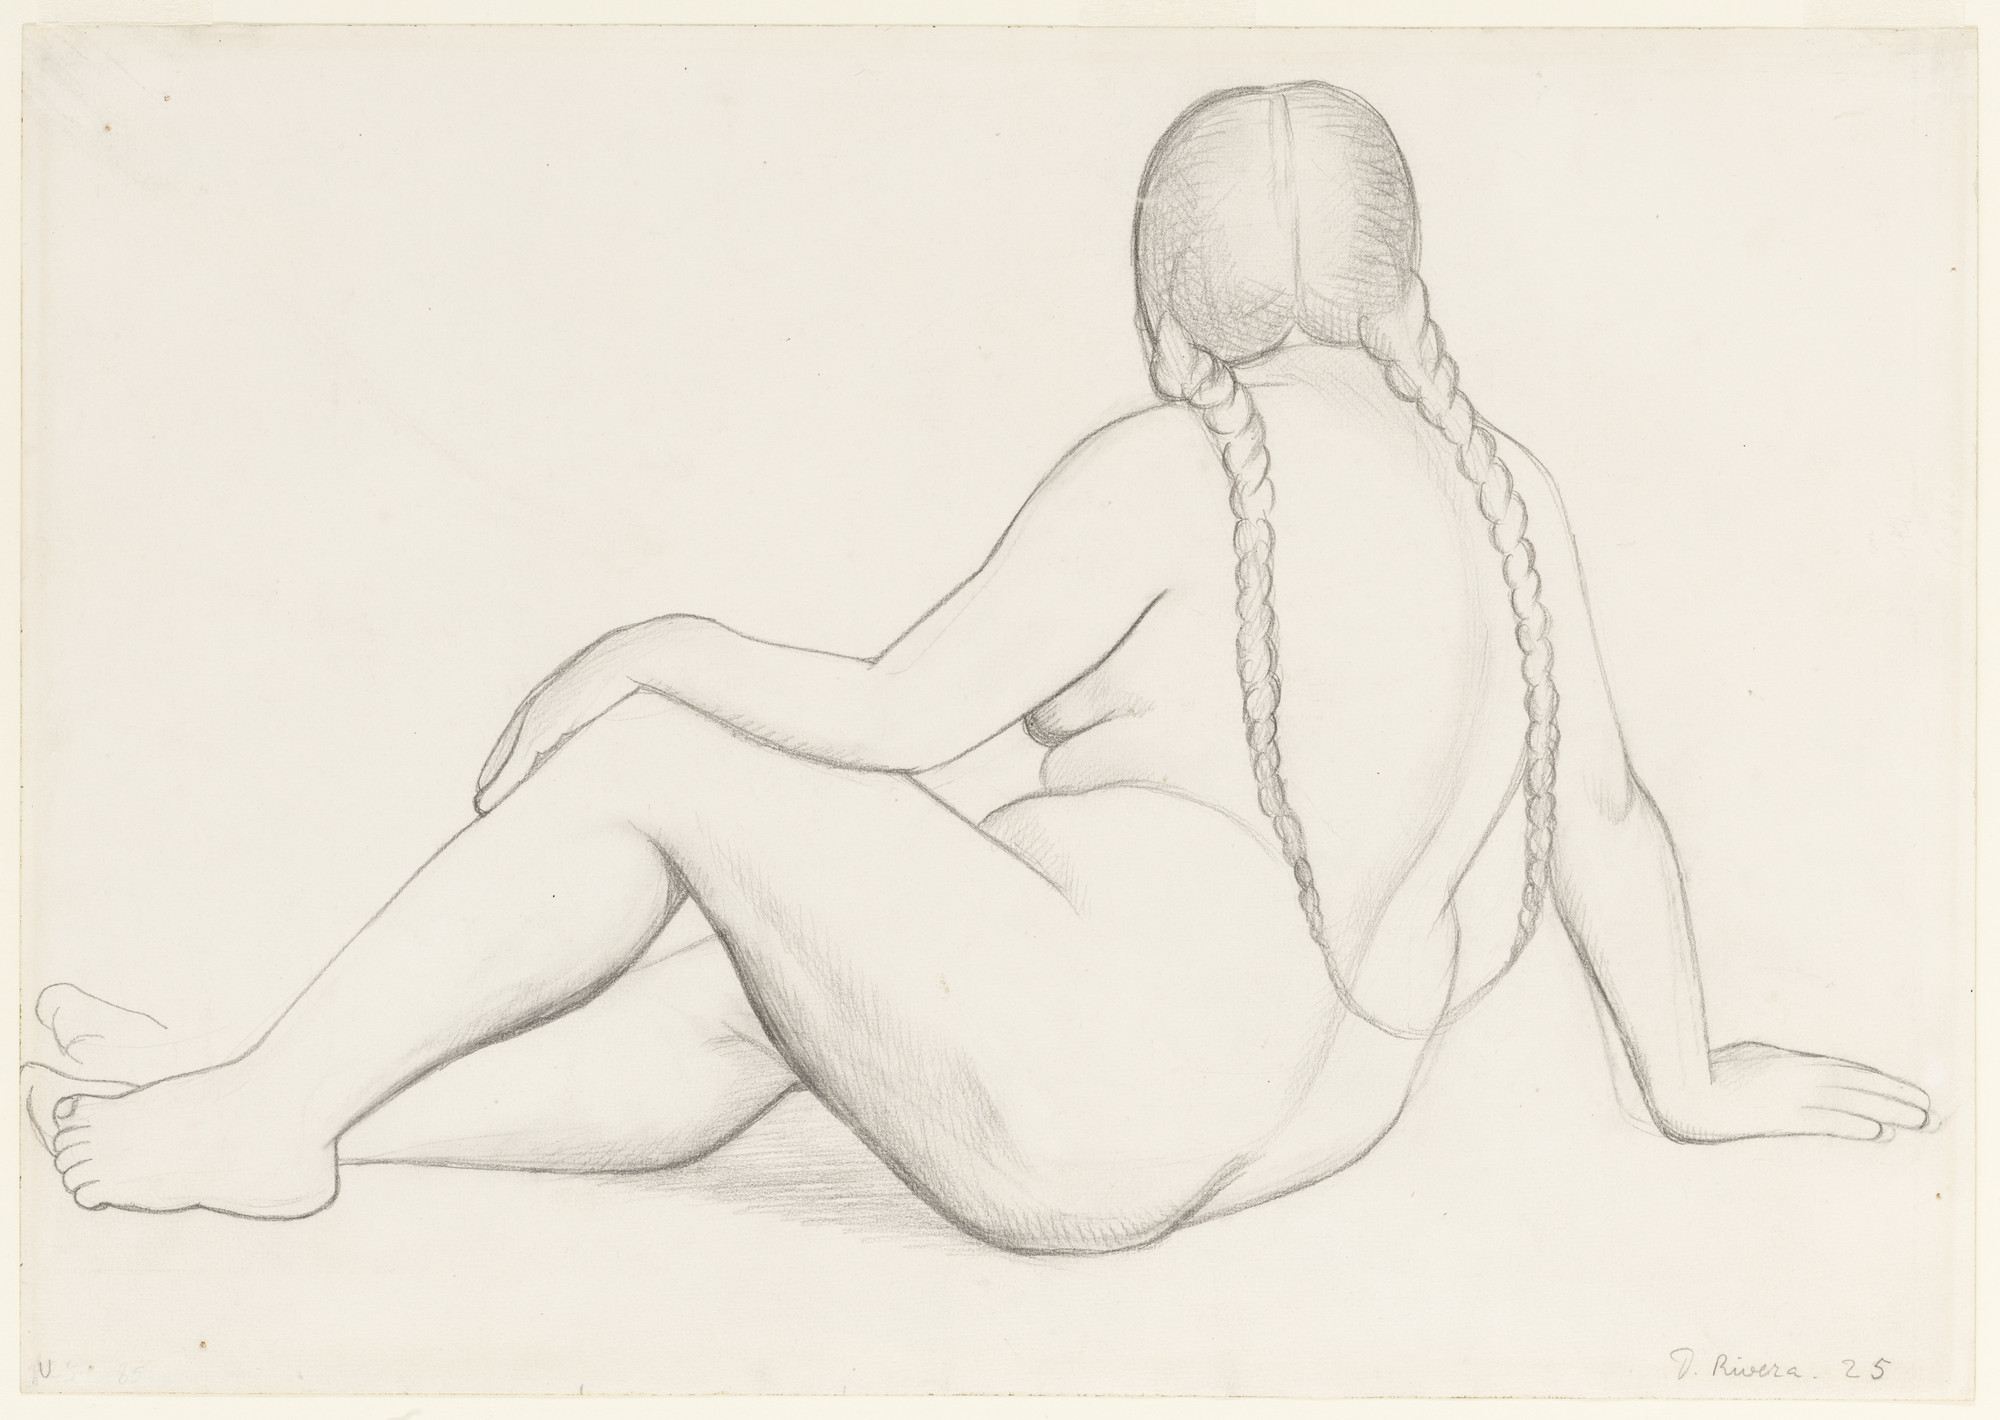 Diego Rivera. Nude with Braided Hair. 1925